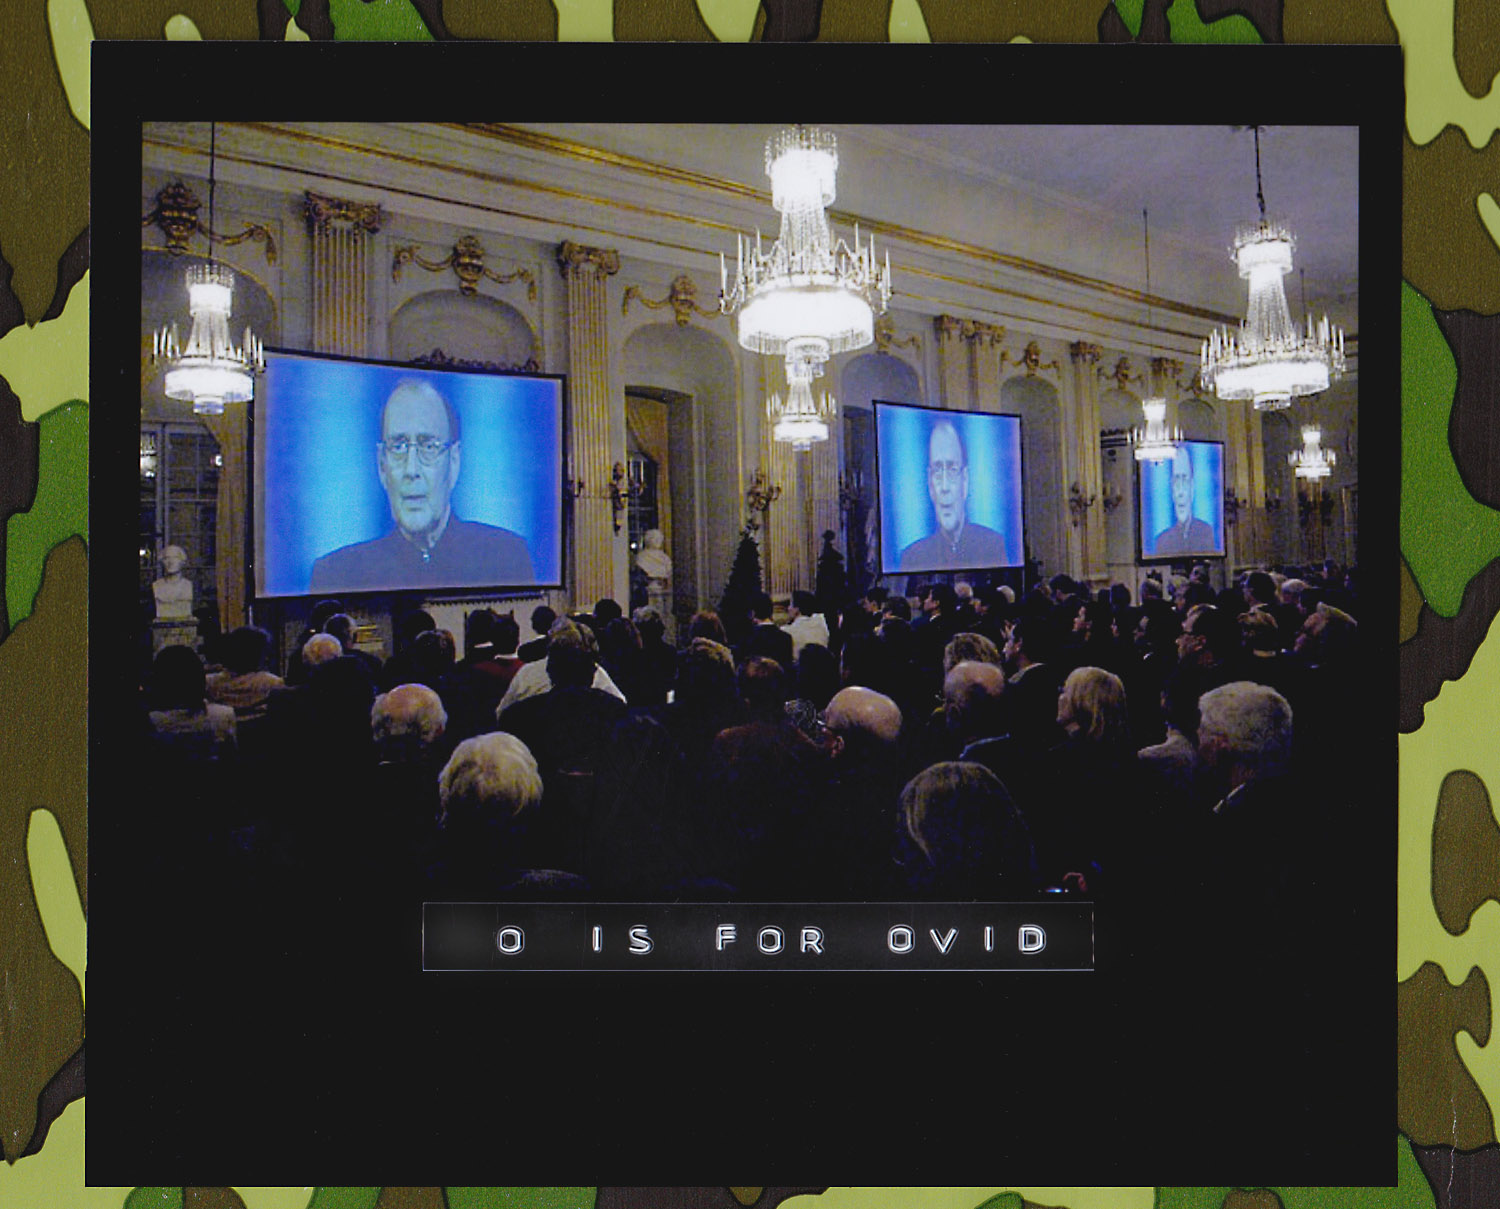 """""""Art, Truth and Politics"""", Nobel Lecture by Harold Pinter, recipient of the Nobel Prize in Literature 2005. His lecture, pre-recorded in a More 4 studio (Sun., 4 Dec. 2005), was shown on video at the Swedish Academy, in Börssalen, Stockholm, on Wednesday, 7 Dec. 2005. (Photo: Janerik Henriksson/European Pressphoto Agency)"""